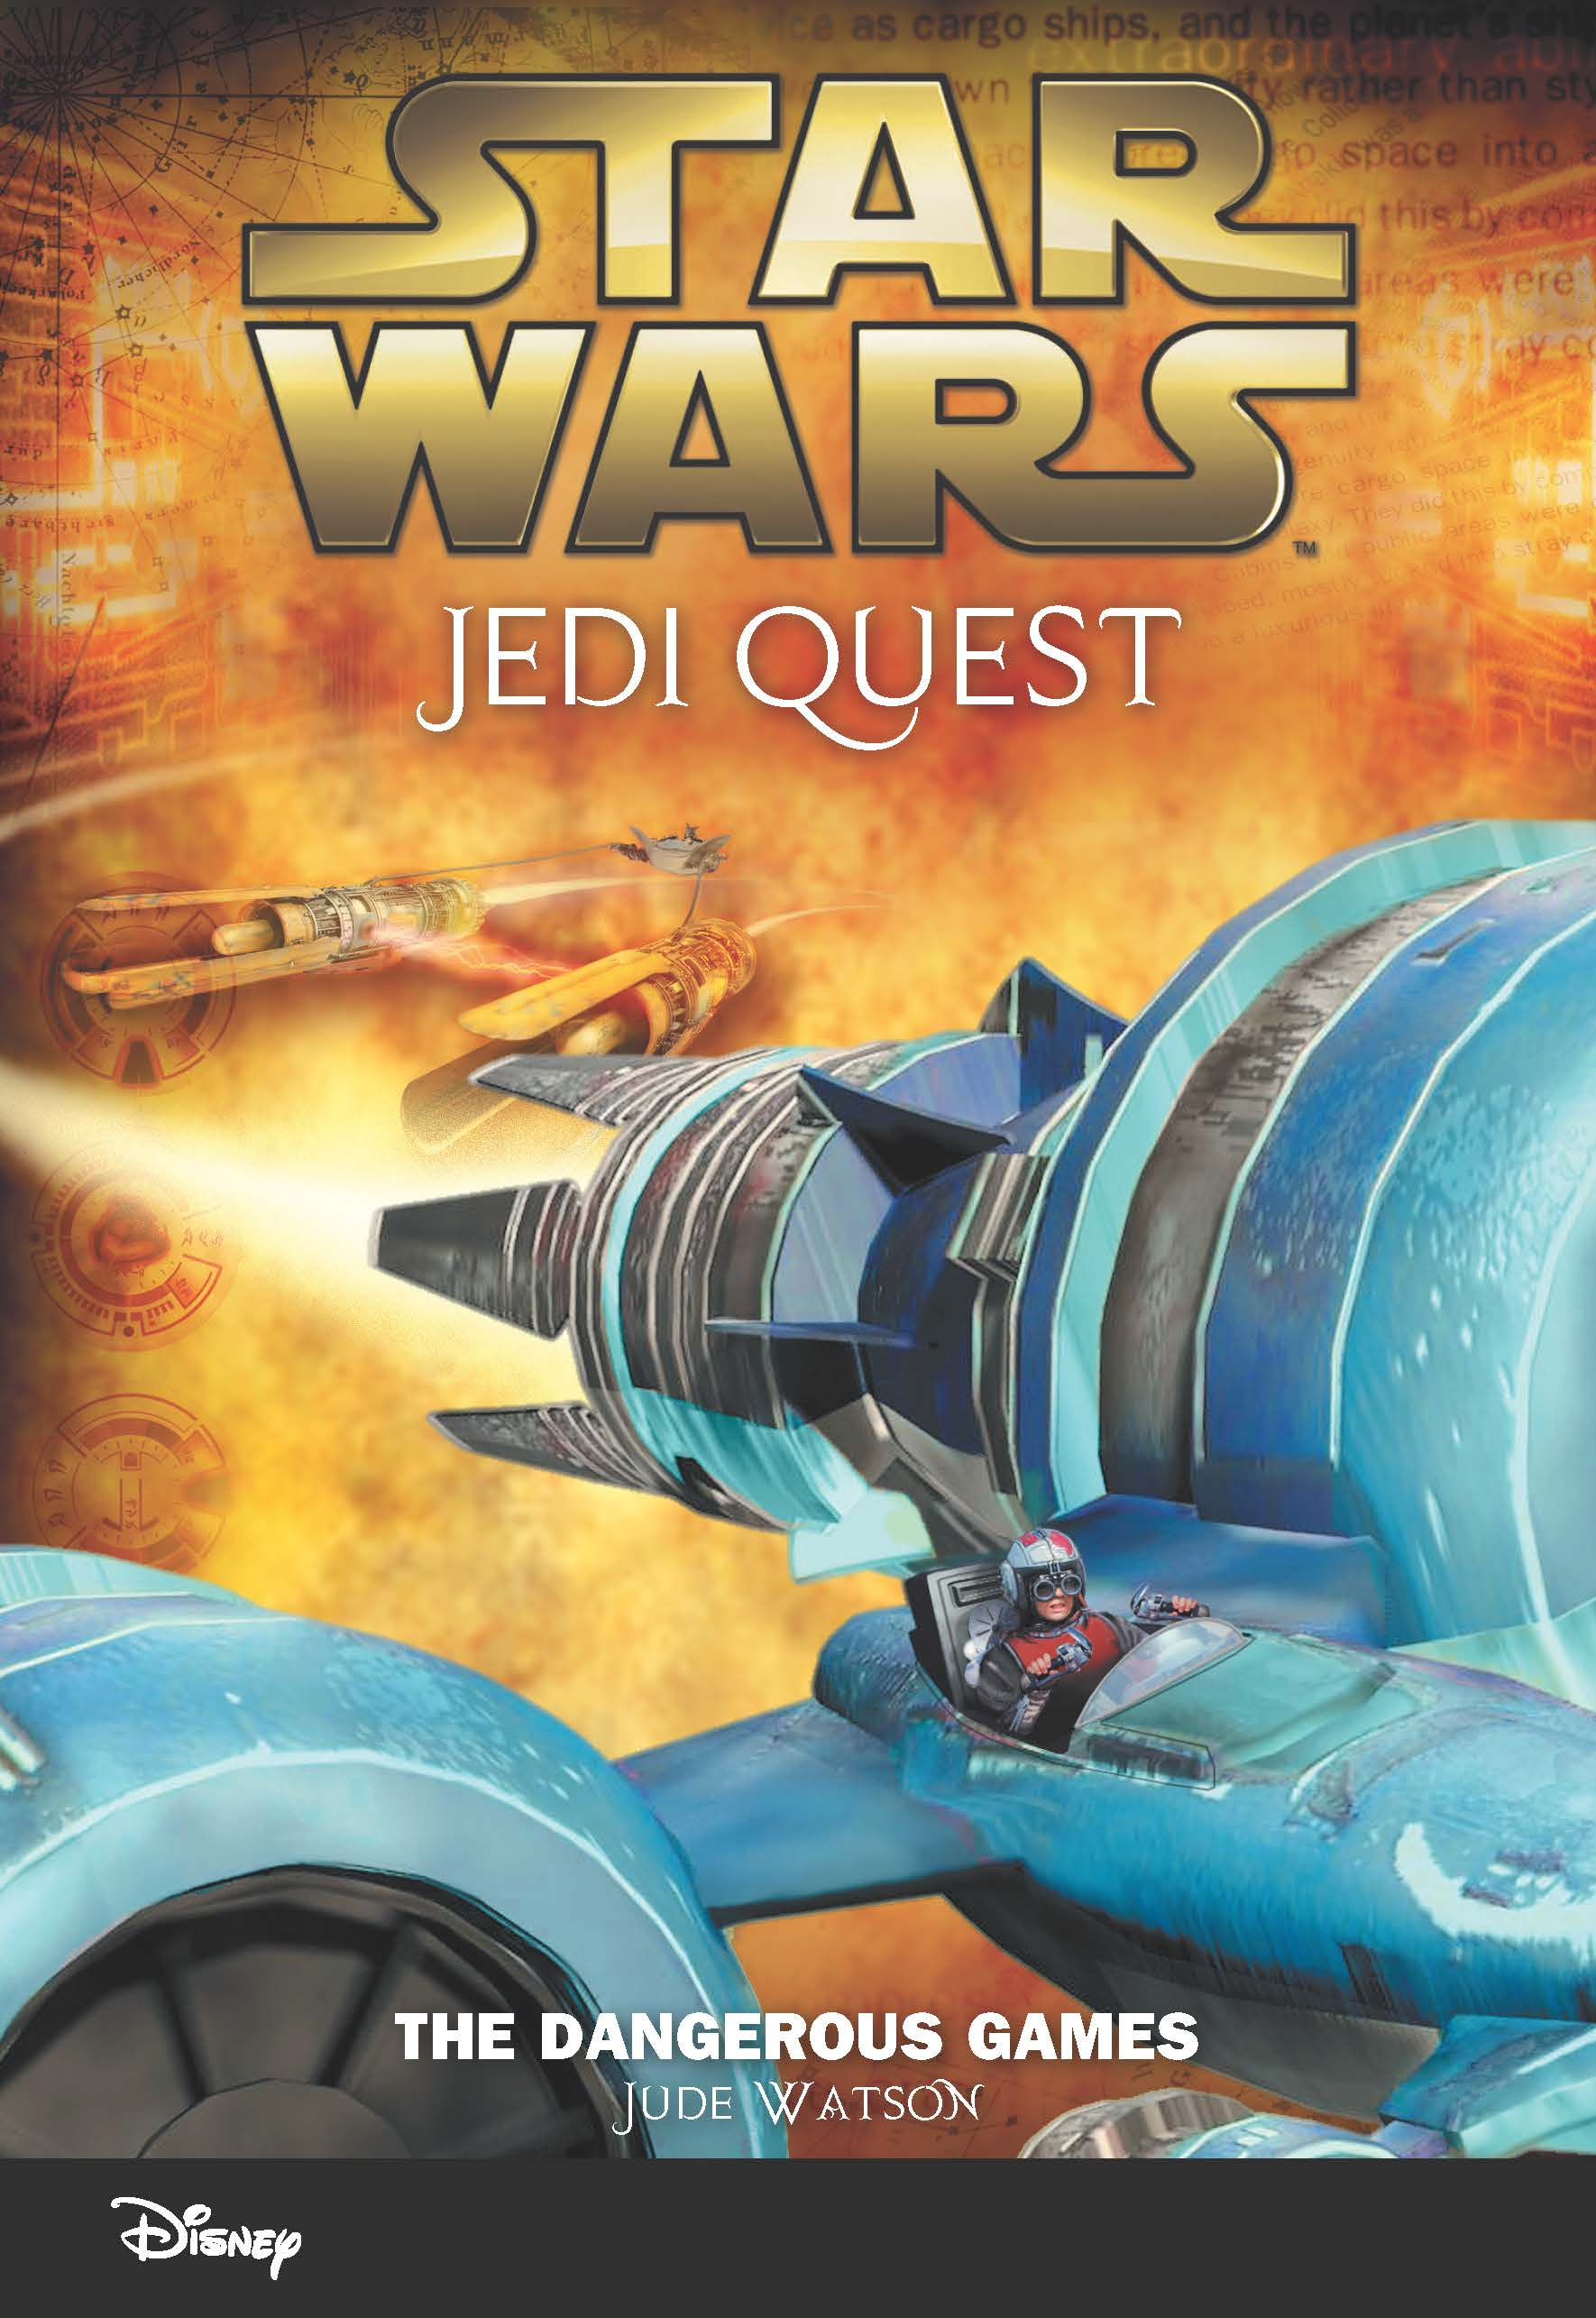 Star Wars Jedi Quest: The Dangerous Games